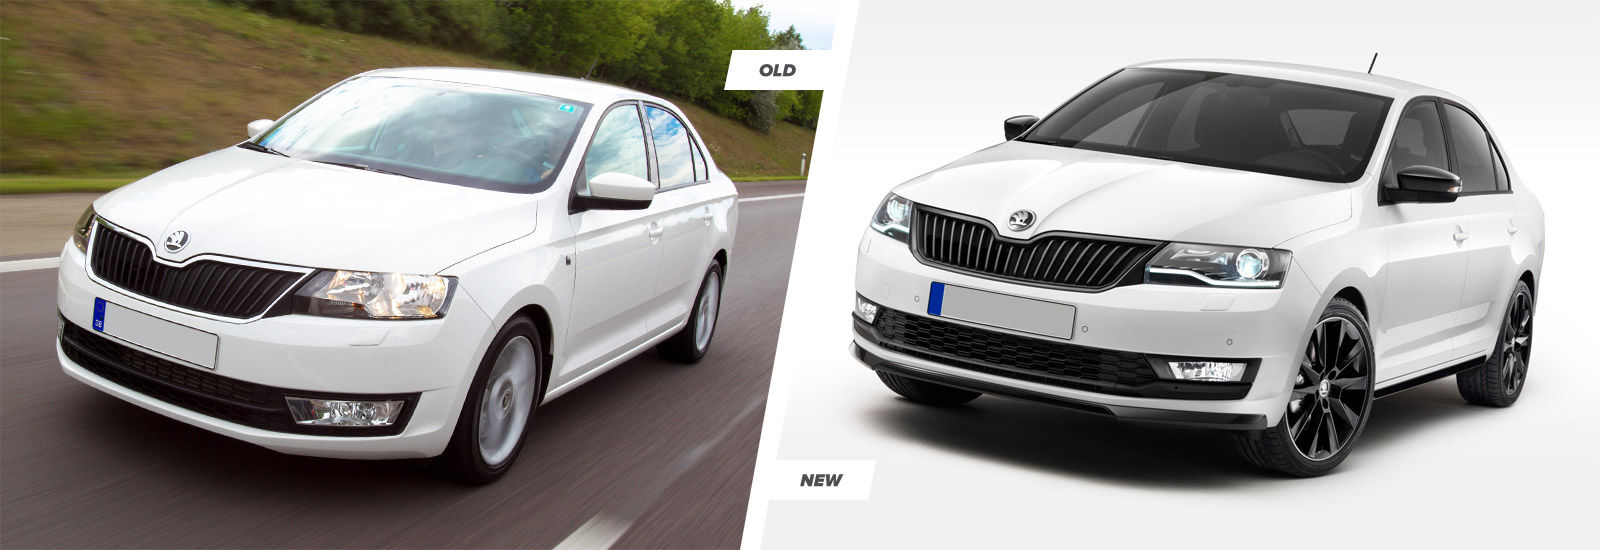 Facelift Skoda Rapid price, specs and release date | carwow